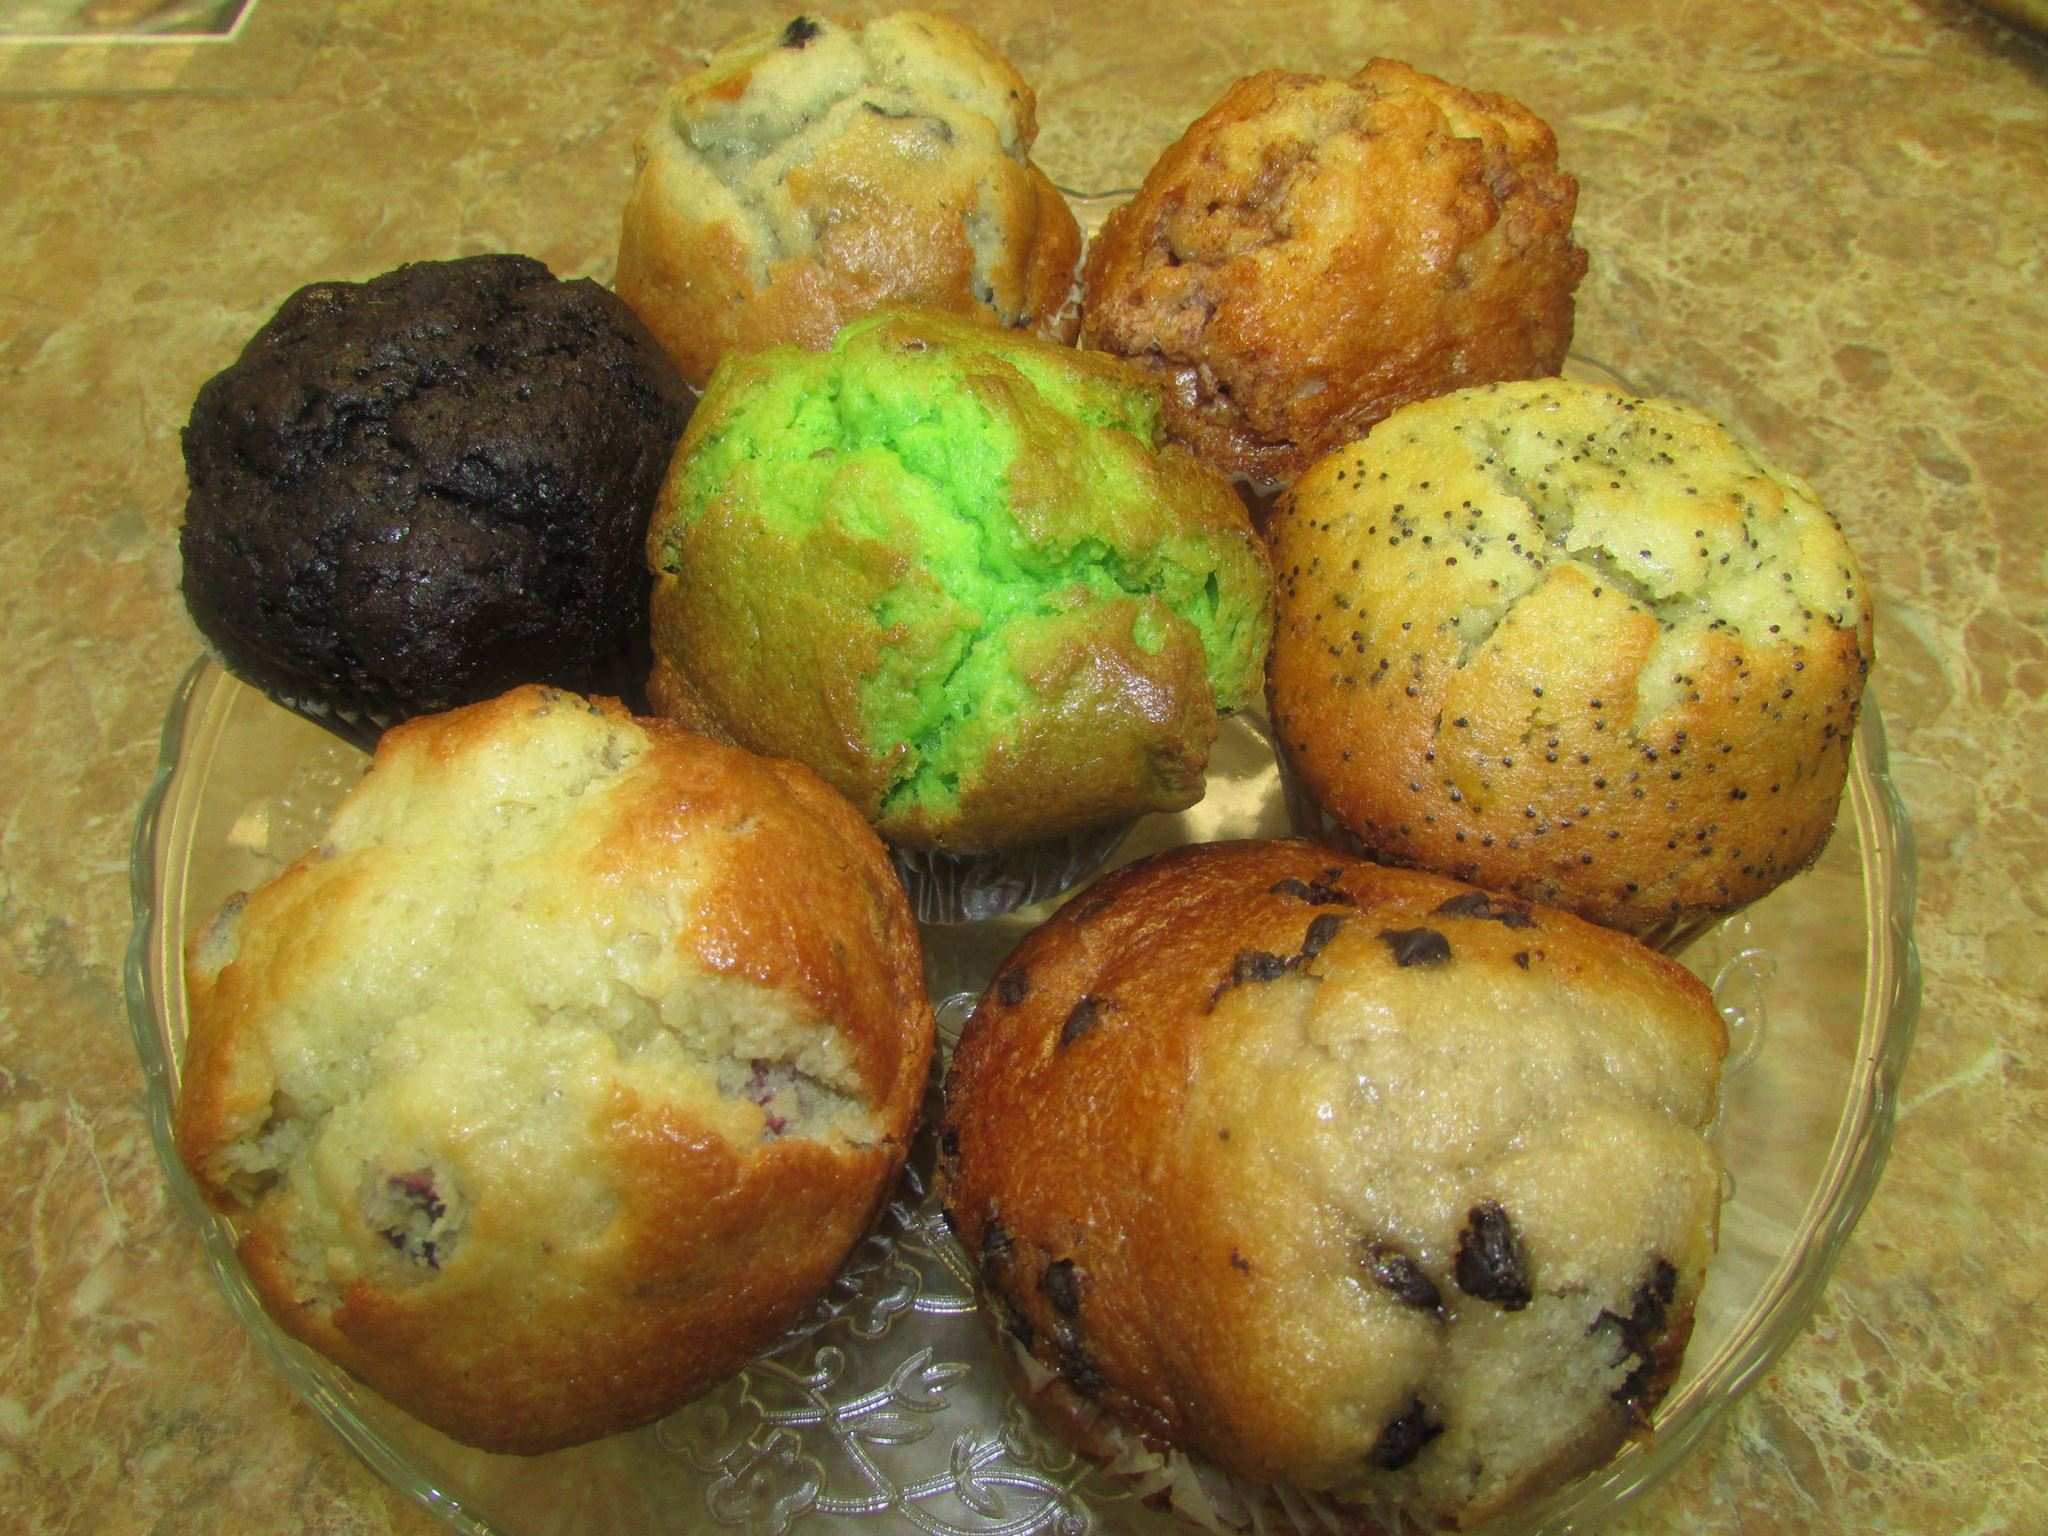 Variety of seven muffins inclusing chocolate chip, pistachio, chocolate, and poppy seed.